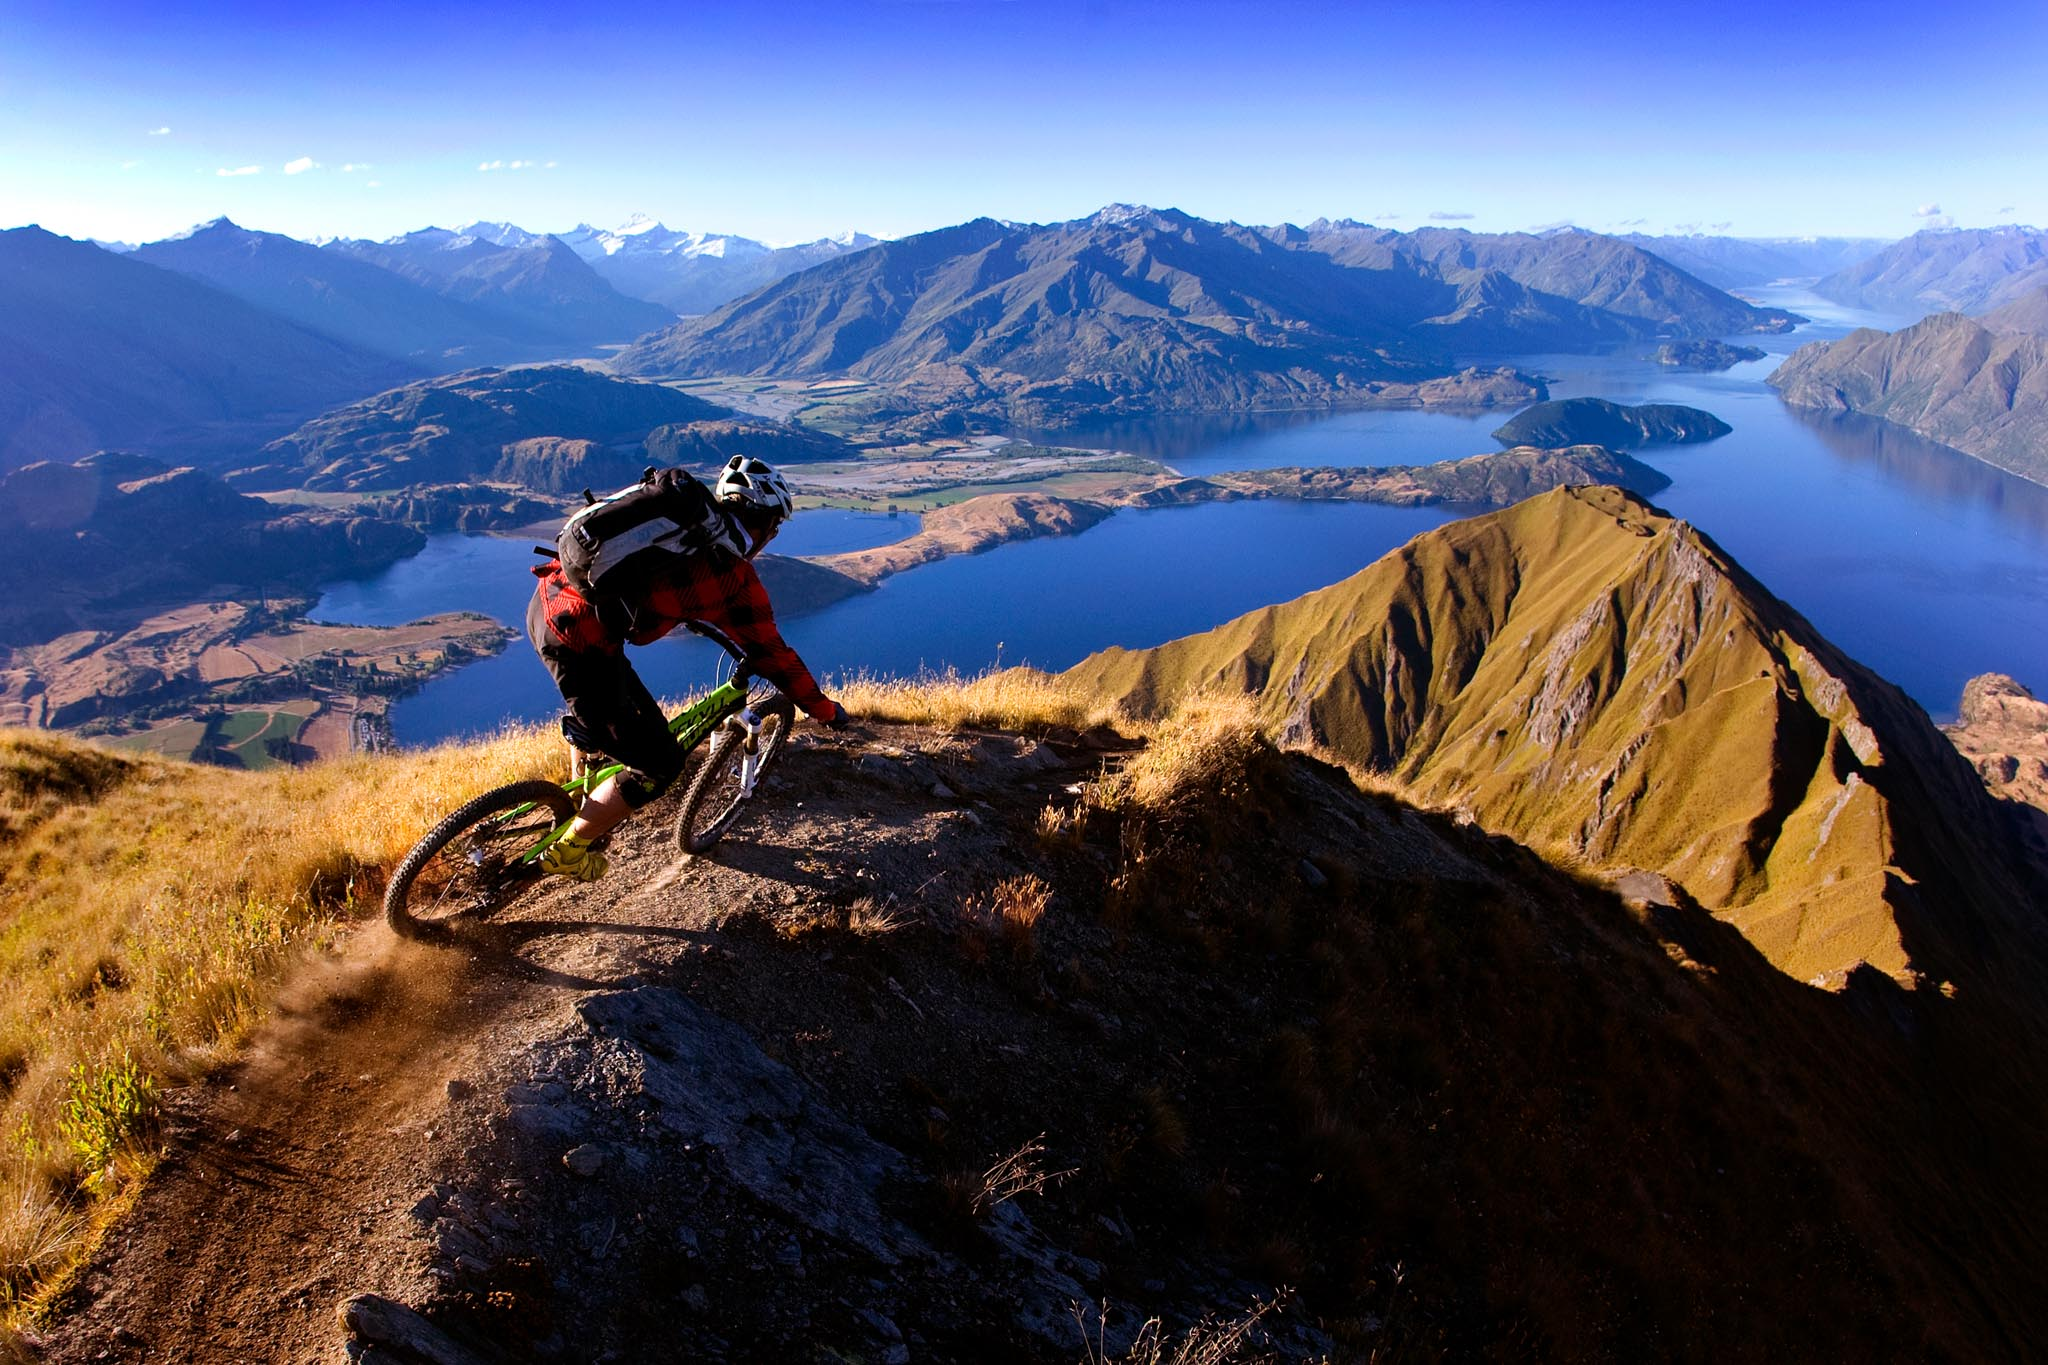 Rider Jerome clementz - Country New zealand - City nest to Wanaka - spot mont roy